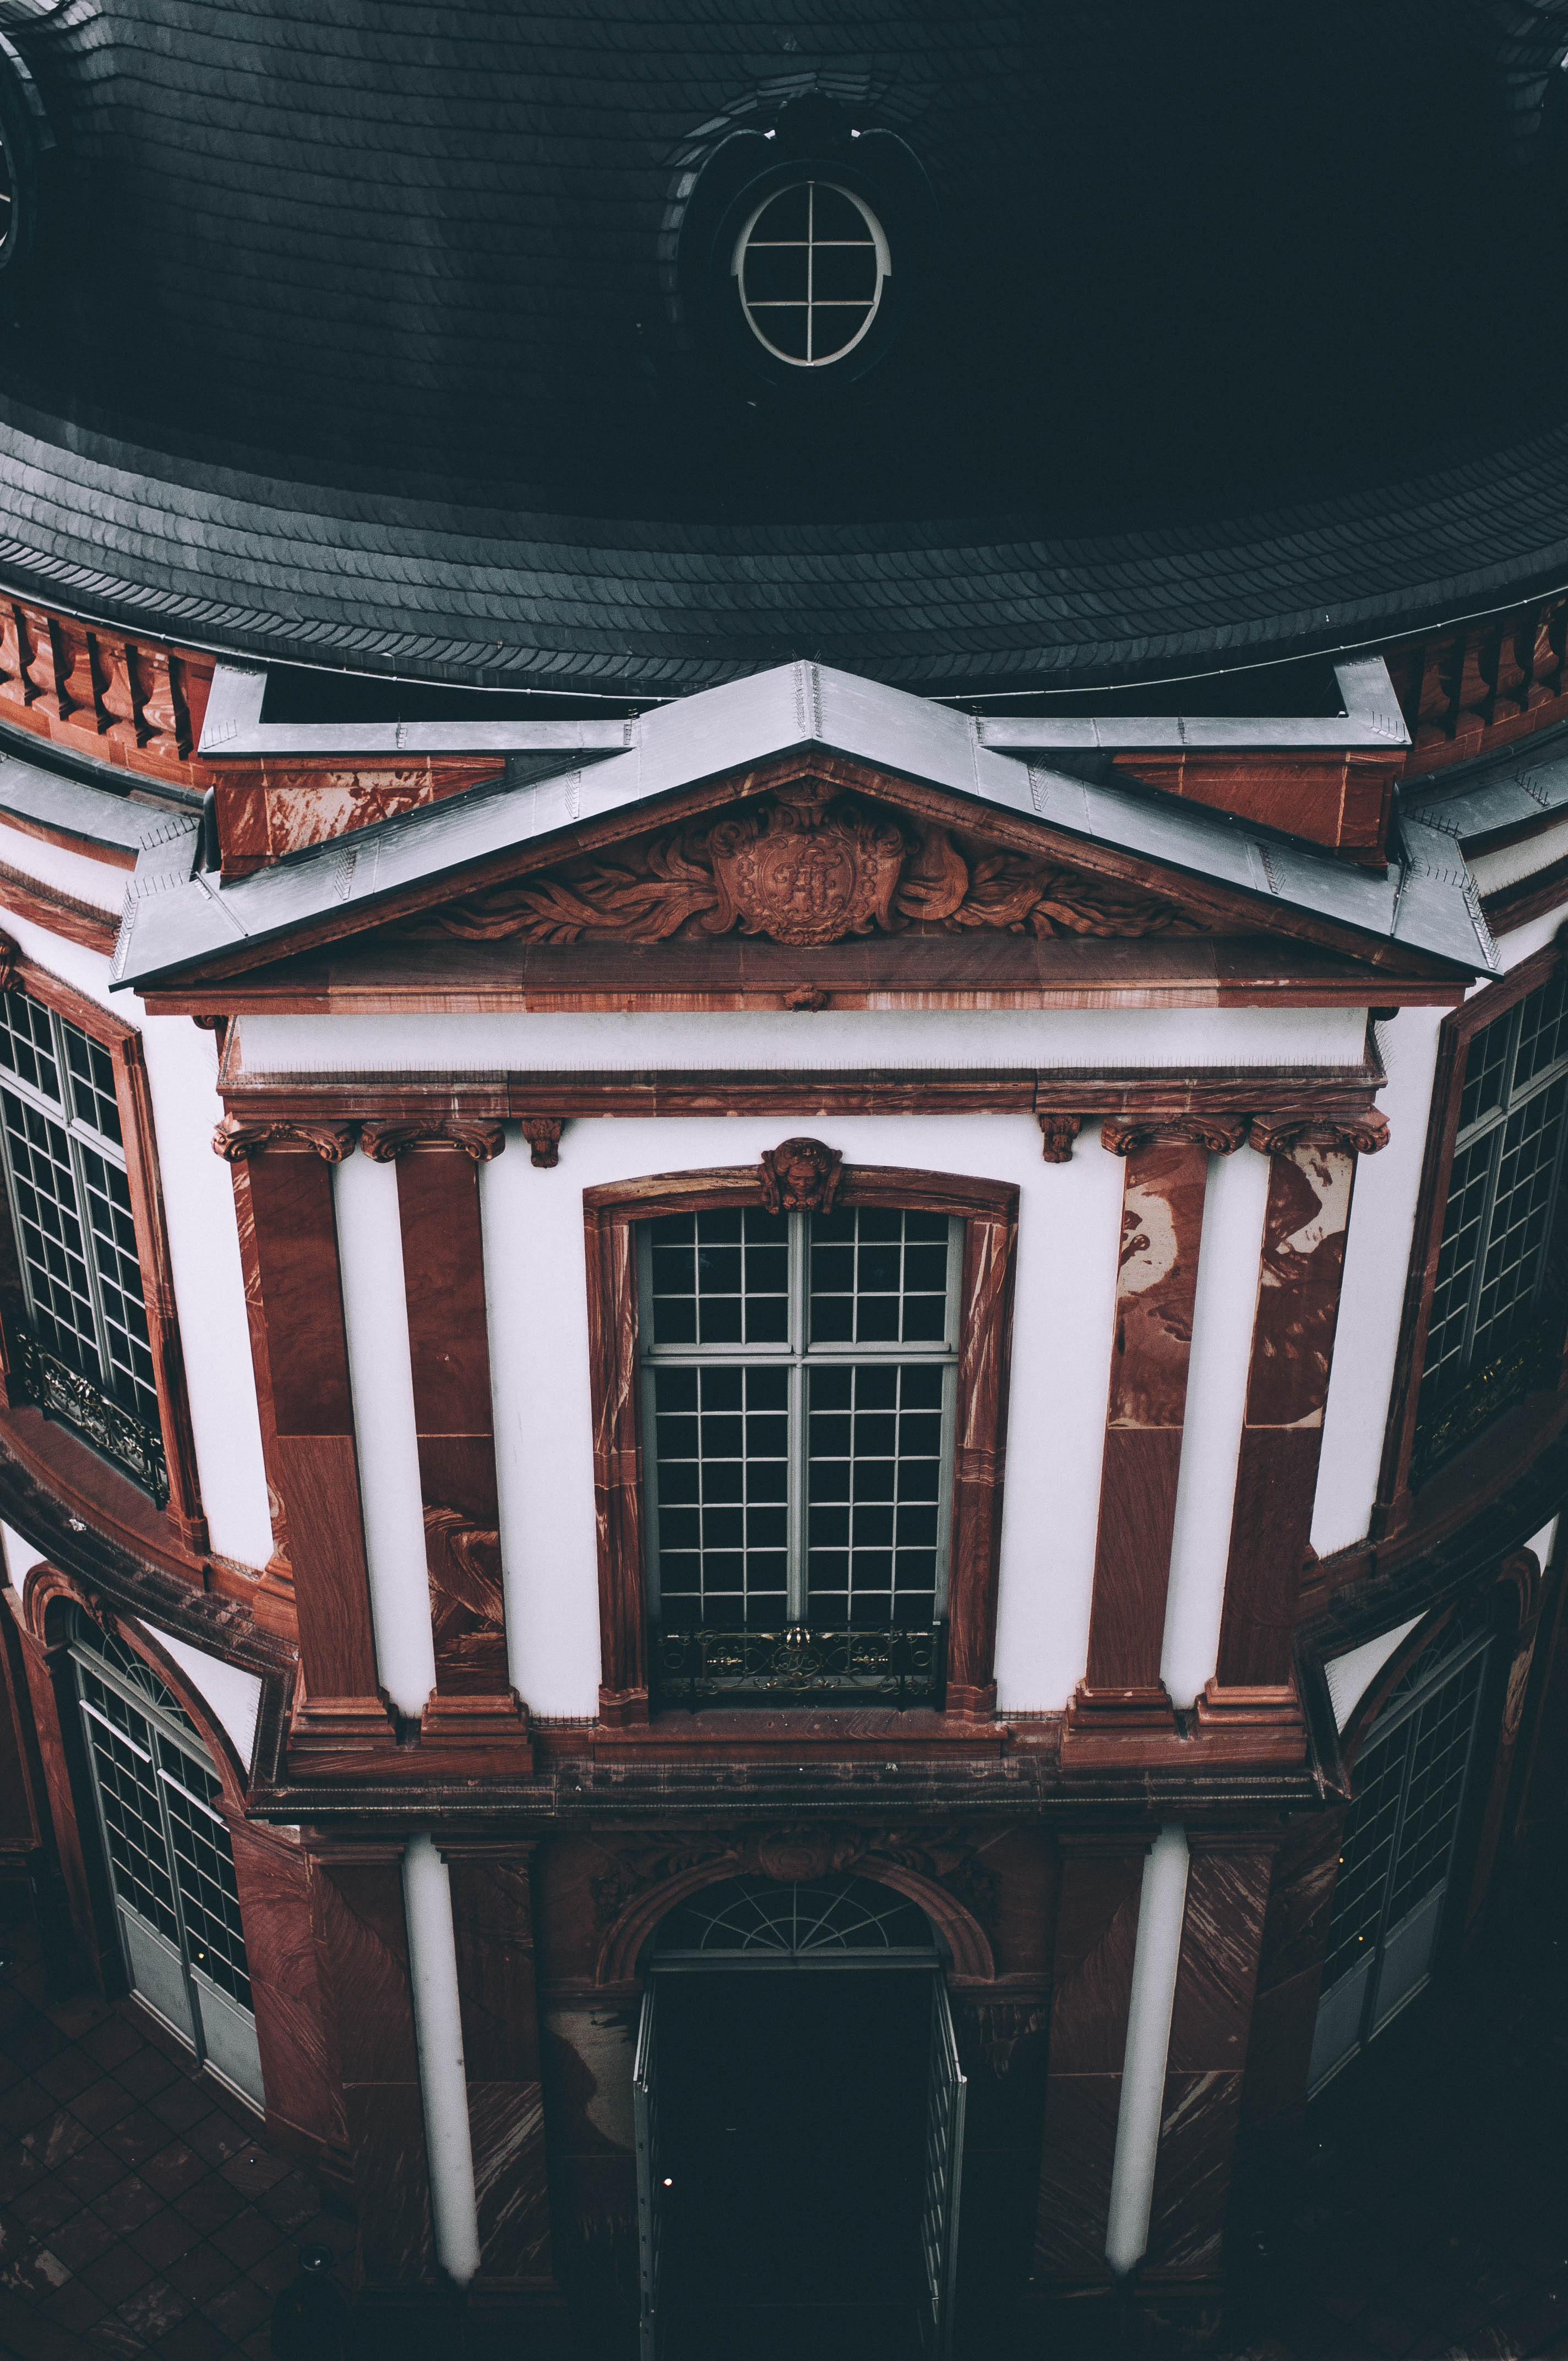 brown and black miniature dome building